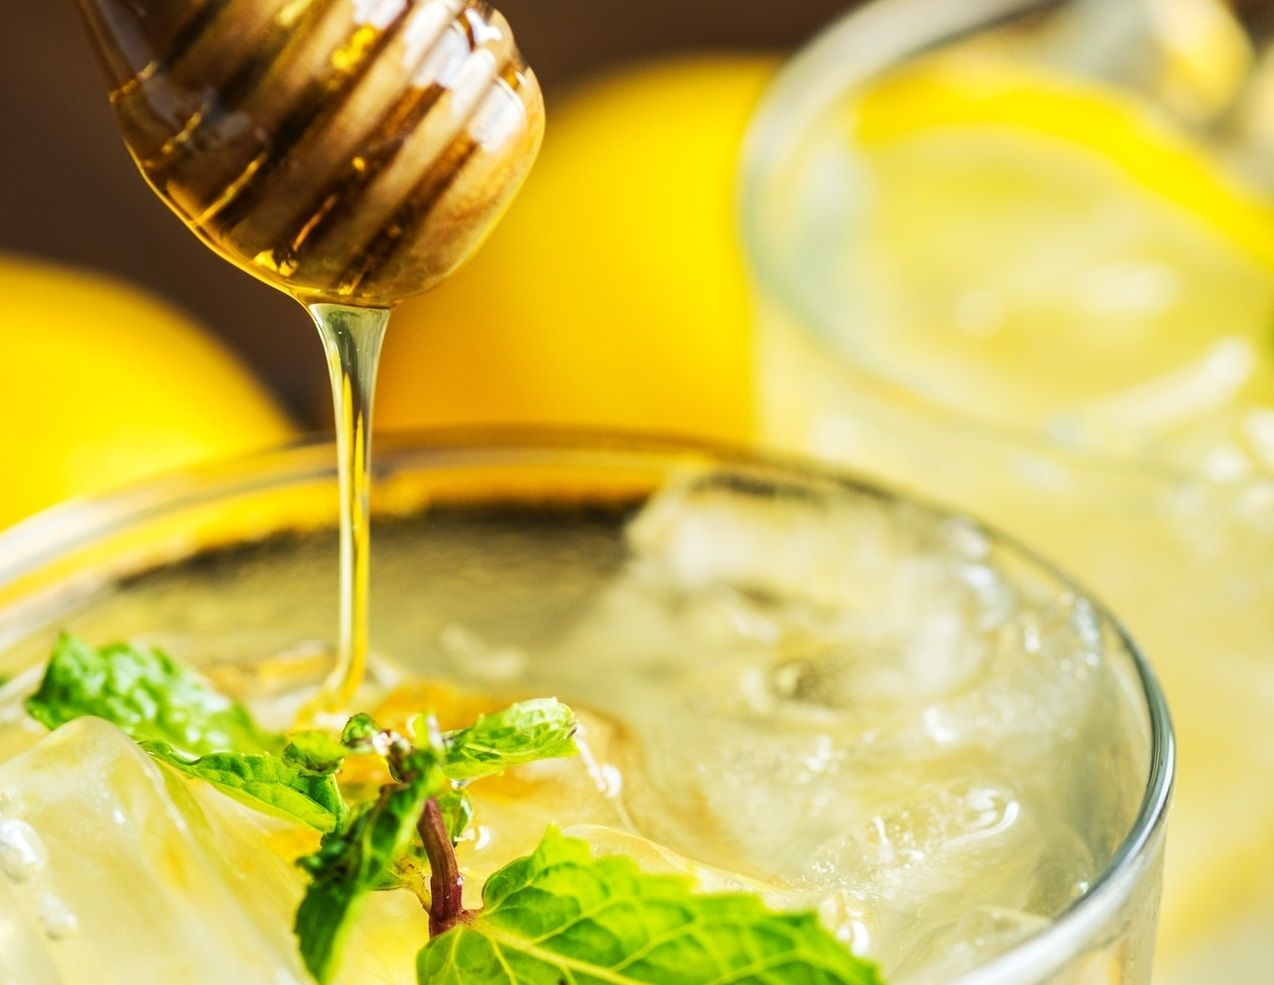 Ten different ways to use CBD honey